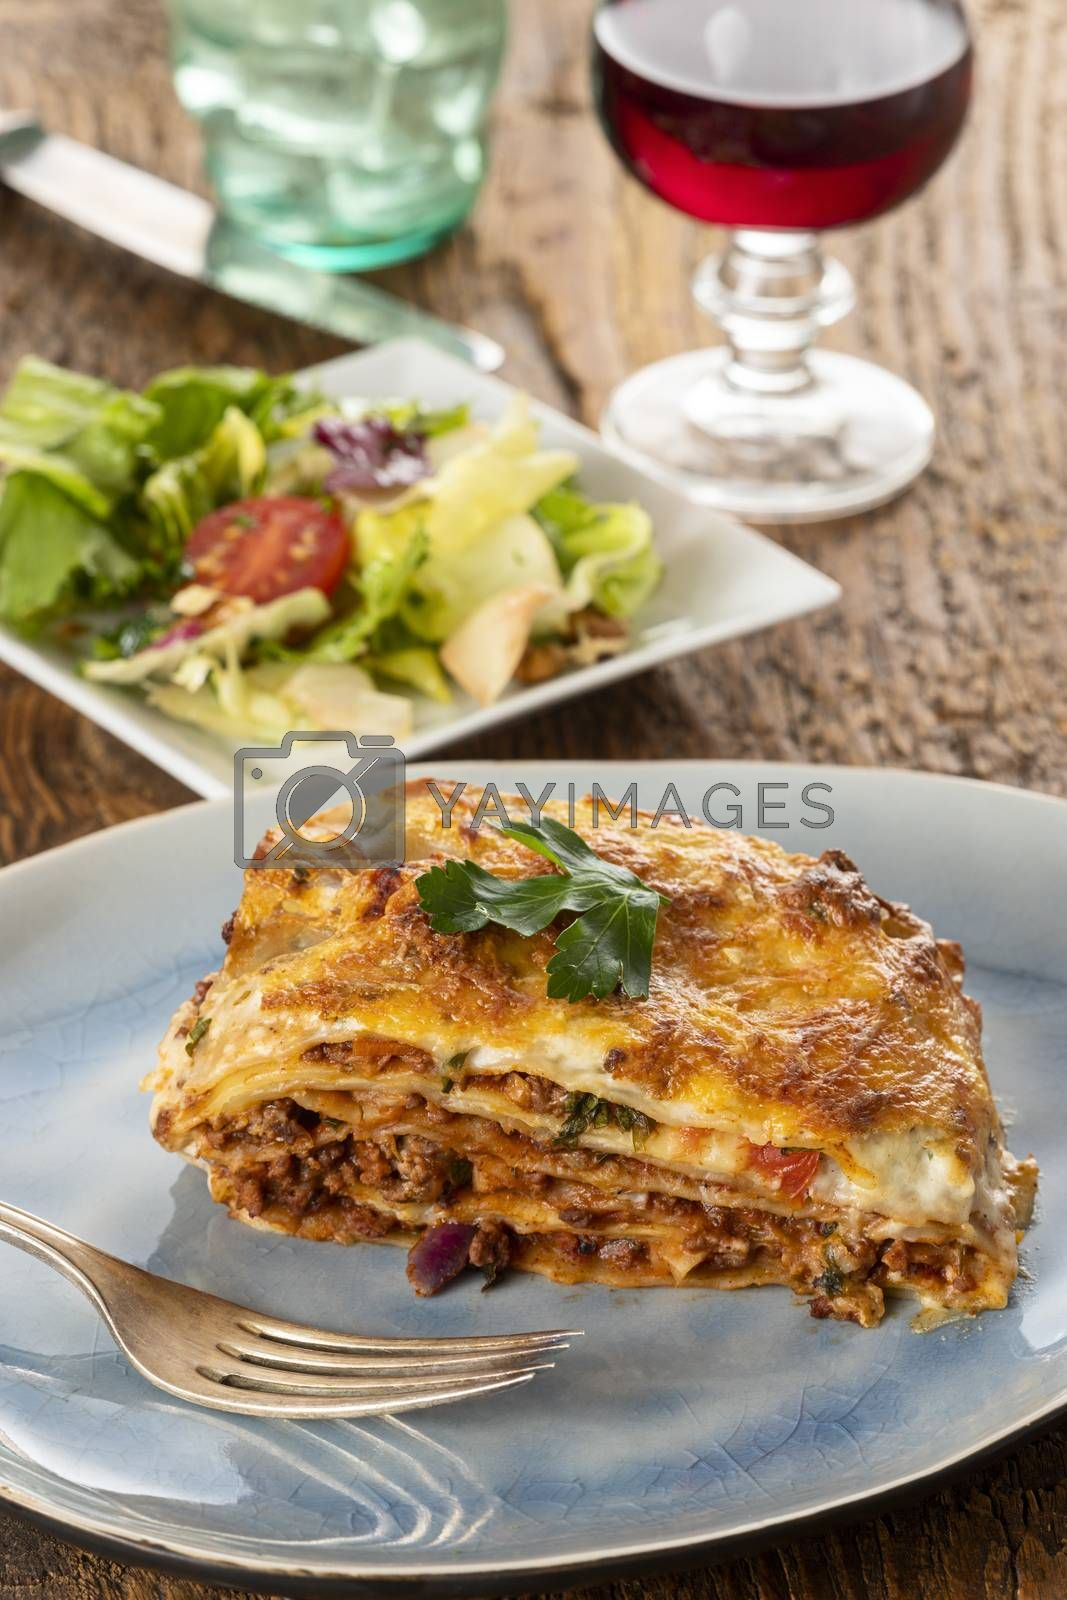 portion of lasagna on a plate  by bernjuer